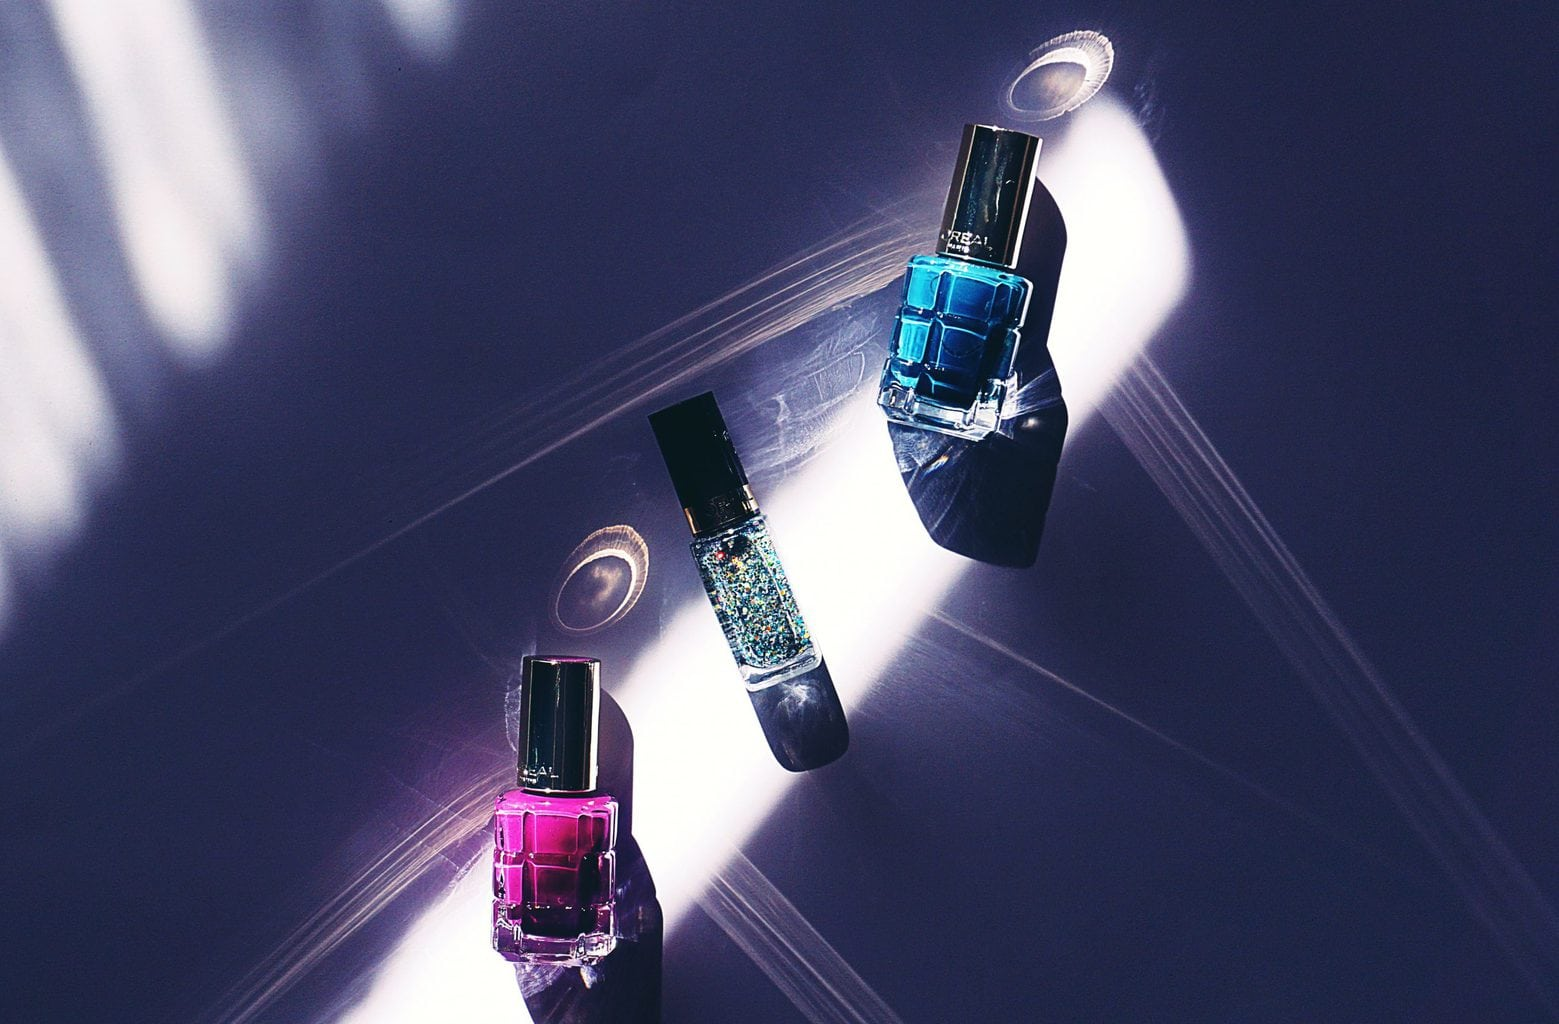 At home manicure tips: 3 nail polishes on table light shining on them source: Suzy Hazelwood from Pexels